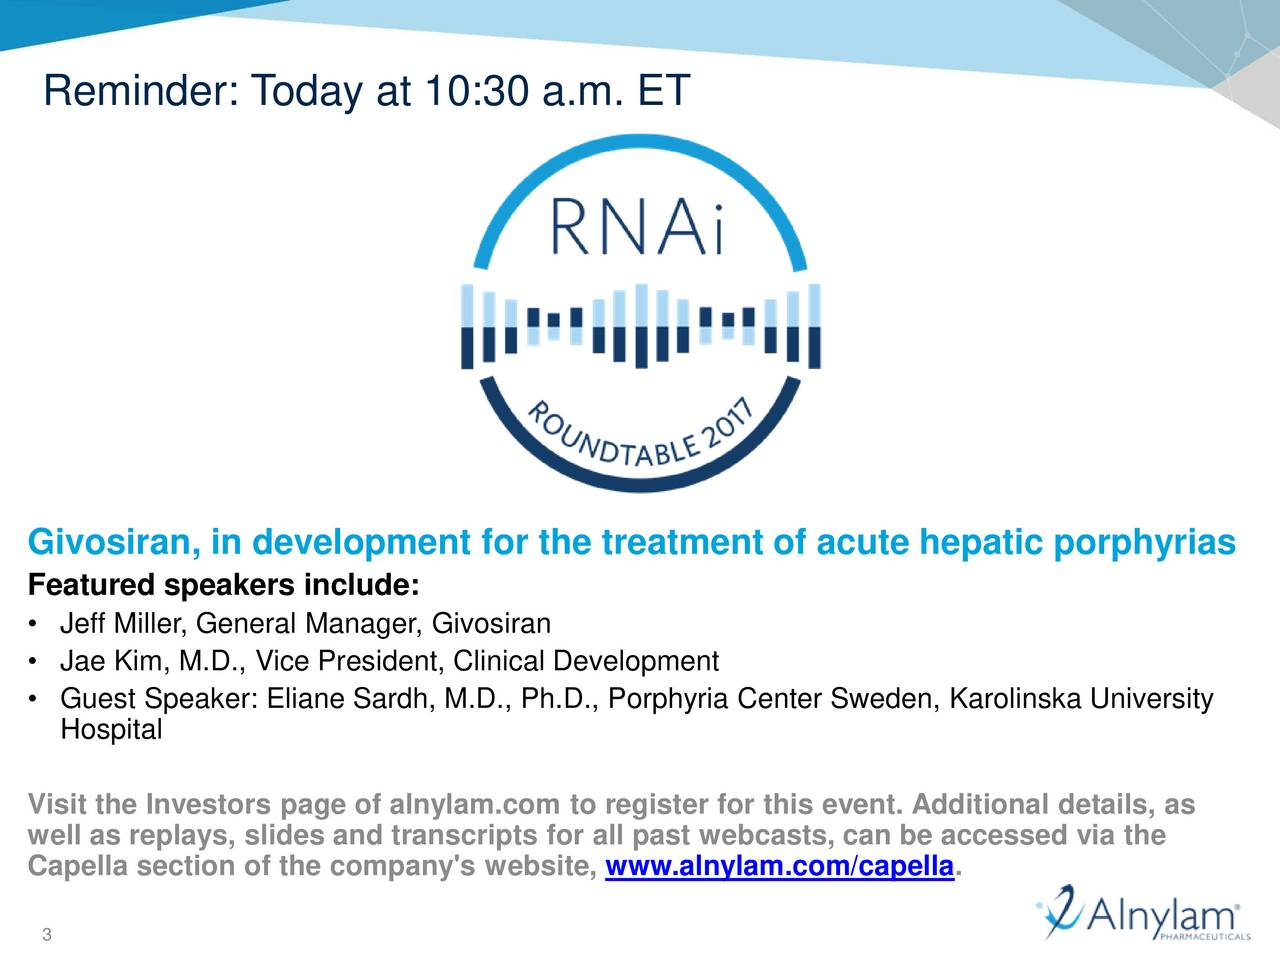 Givosiran, in development for the treatment of acute hepatic porphyrias Featured speakers include: Jeff Miller, General Manager, Givosiran Jae Kim, M.D., Vice President, Clinical Development Guest Speaker: Eliane Sardh, M.D., Ph.D., Porphyria Center Sweden, Karolinska University Hospital Visit the Investors page of alnylam.com to register for this event. Additional details, as well as replays, slides and transcripts for all past webcasts, can be accessed via the Capella section of the company's website, www.alnylam.com/capella. 3